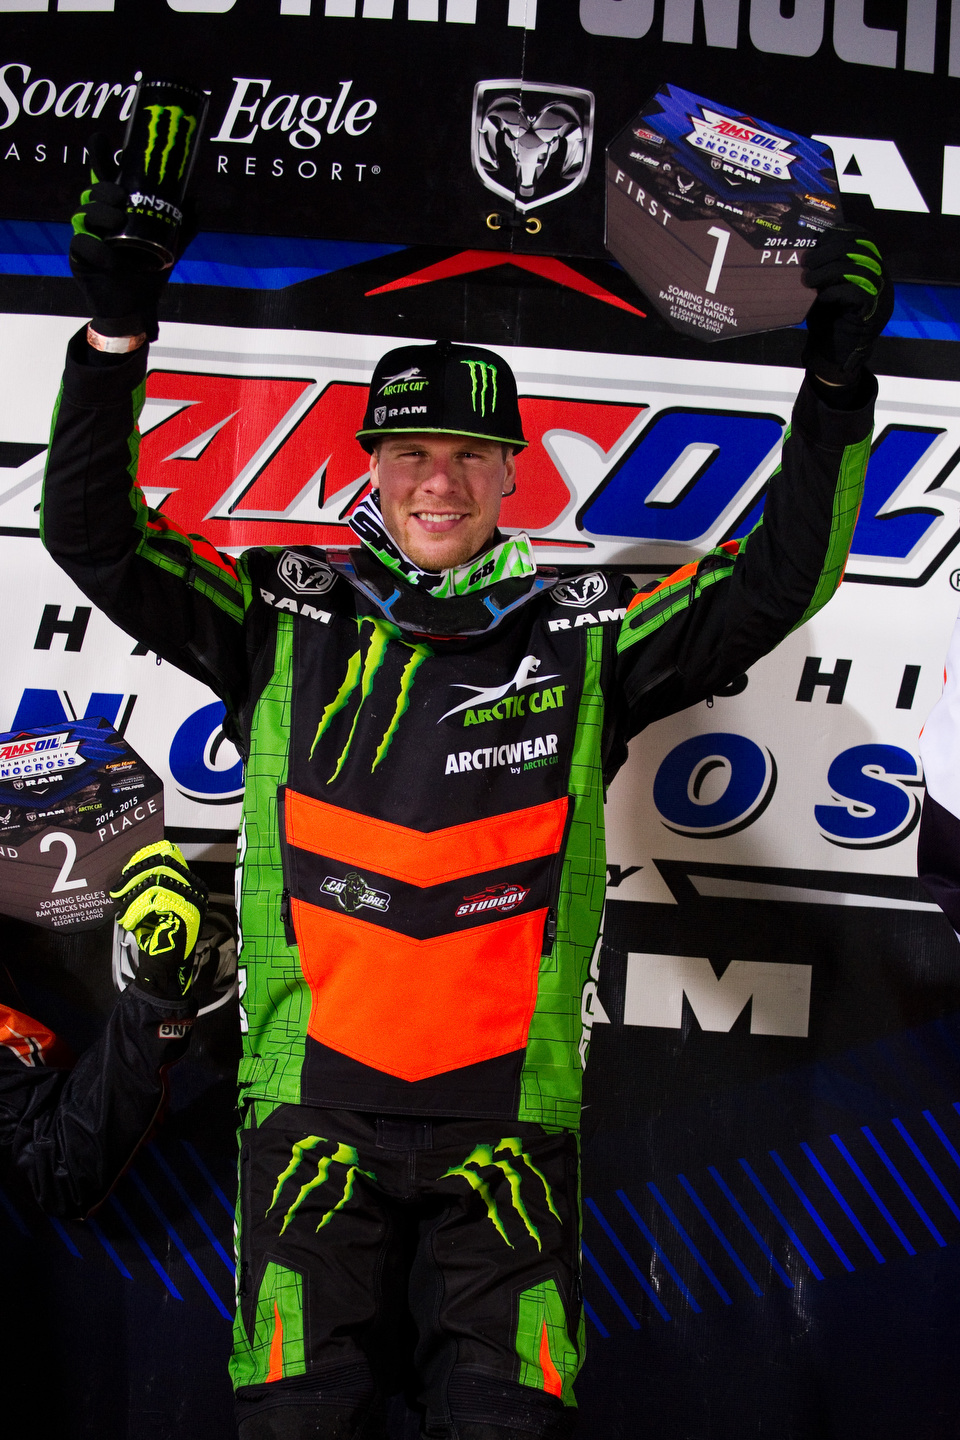 Hibbert takes win at Ram Snocross National and holds points lead